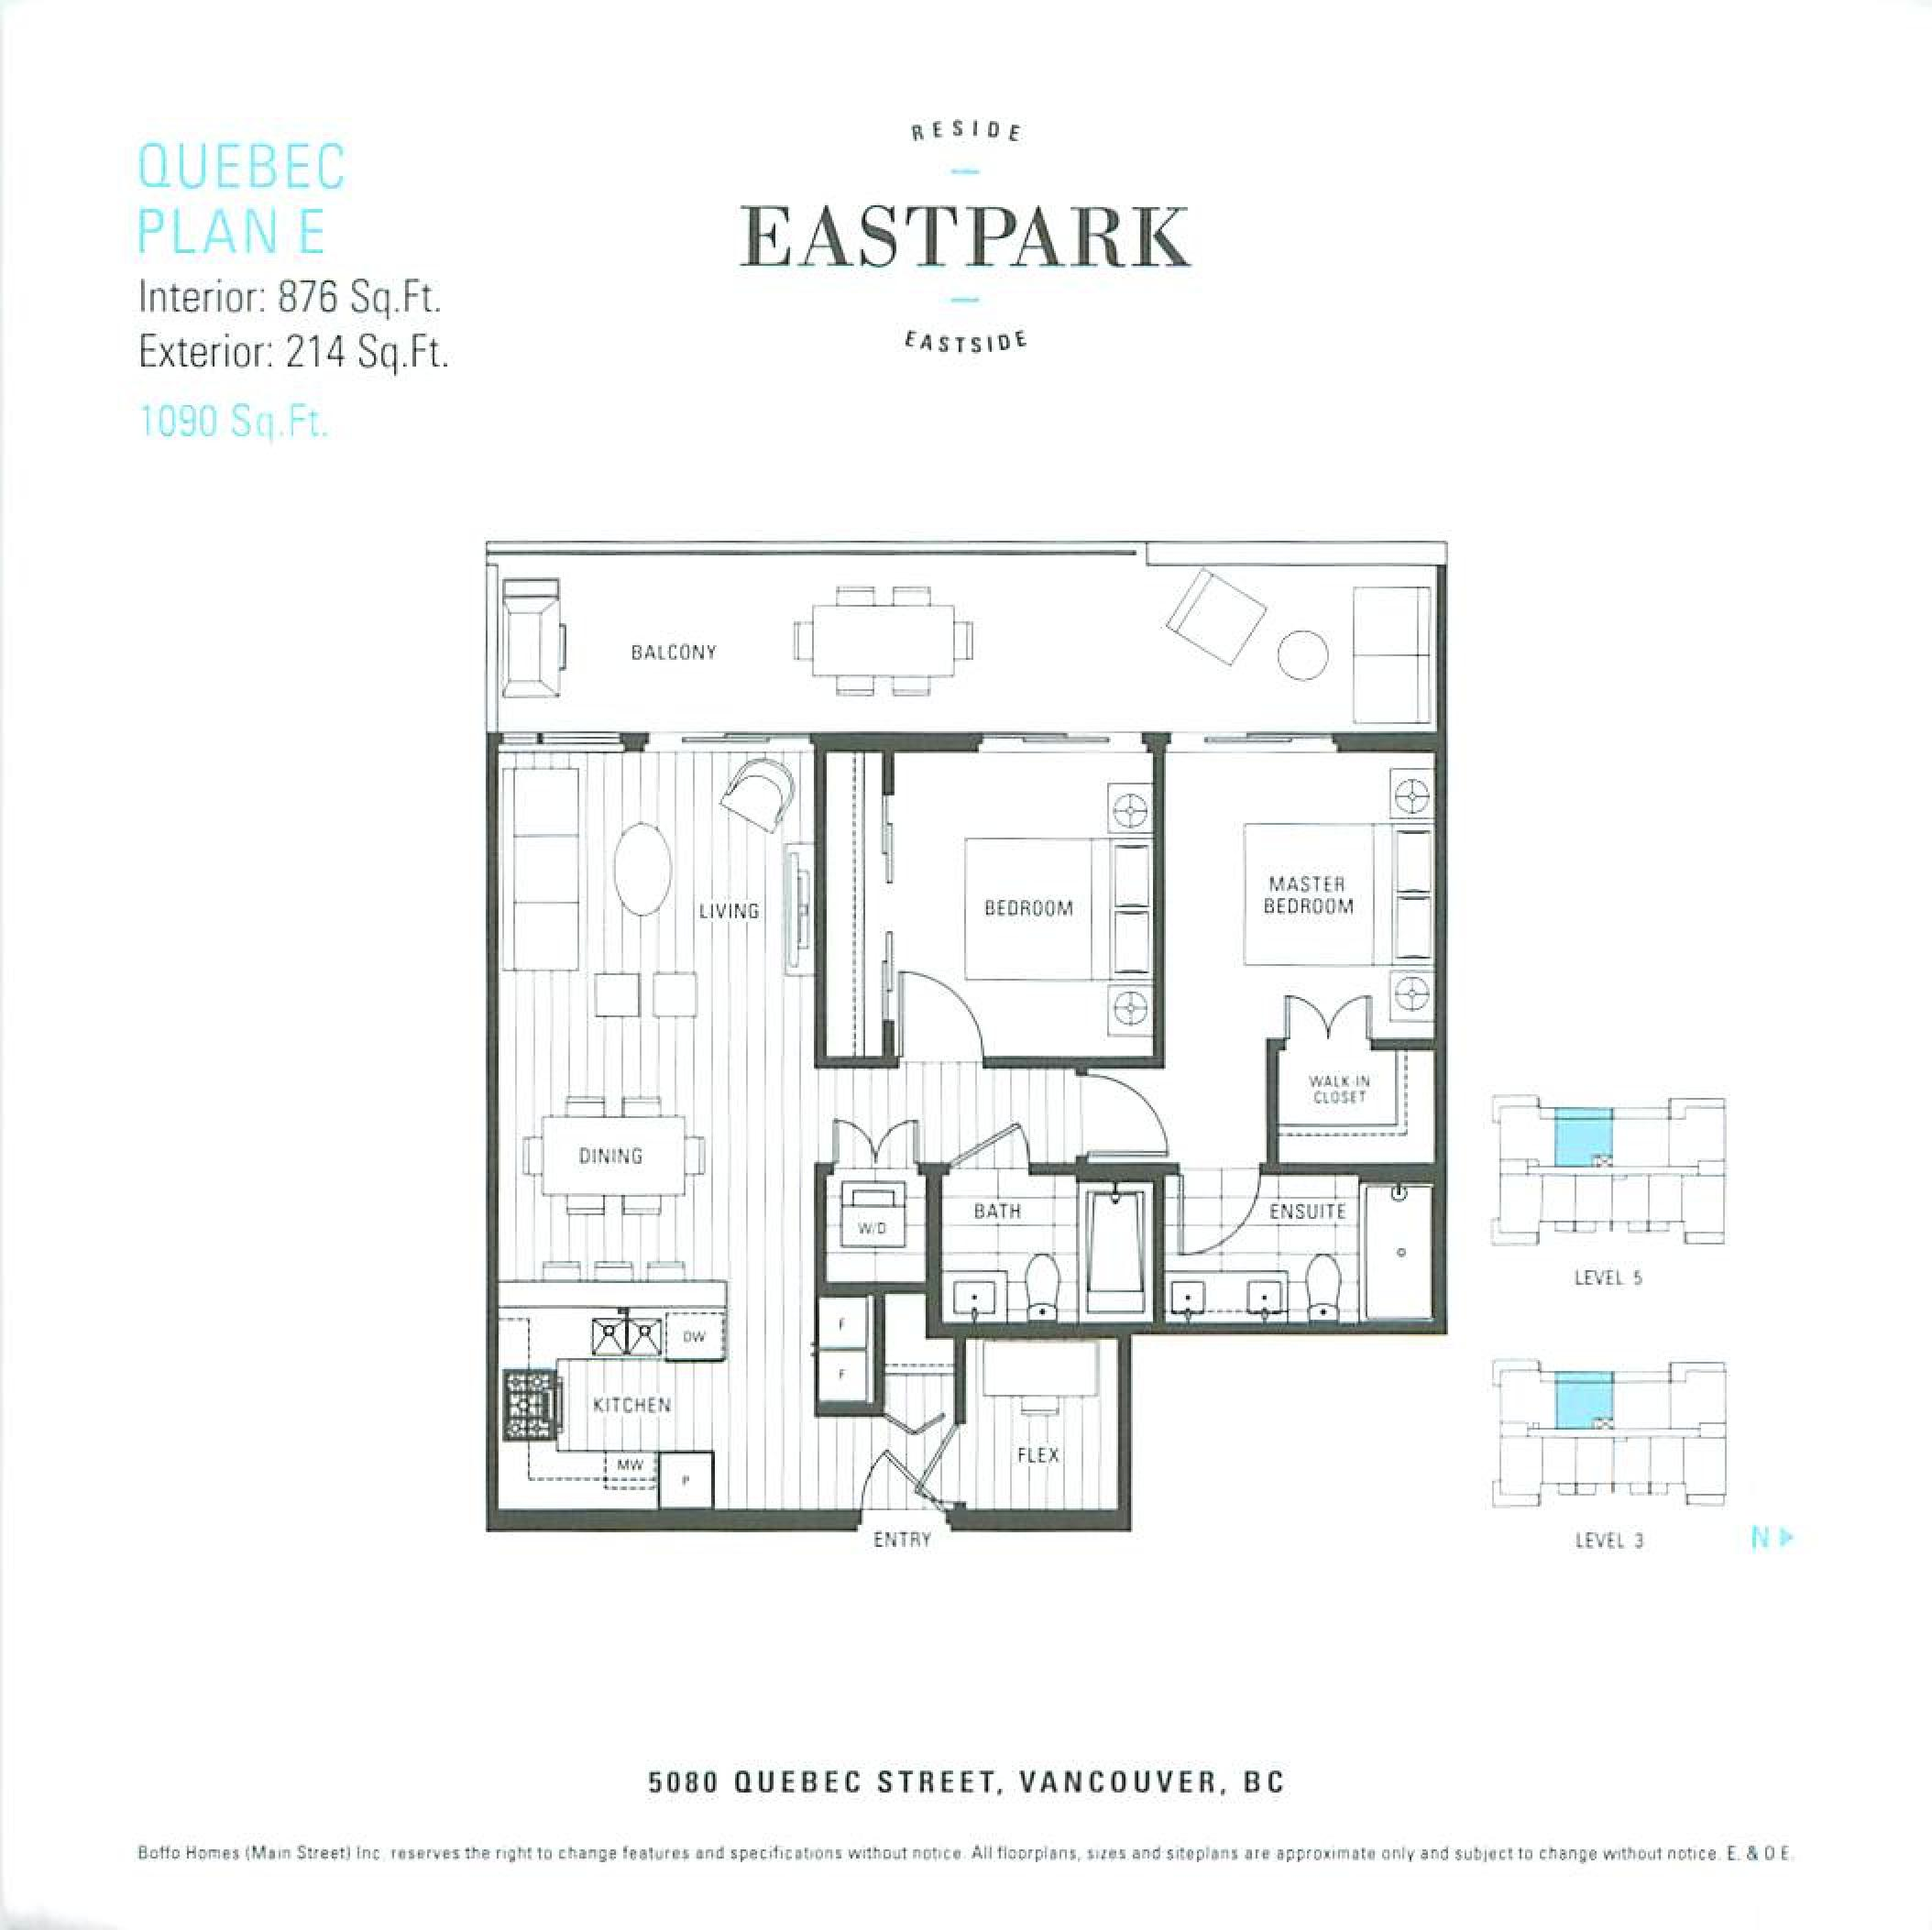 EastPark Quebec Smaller Floor Plans Mike Stewart-page-005